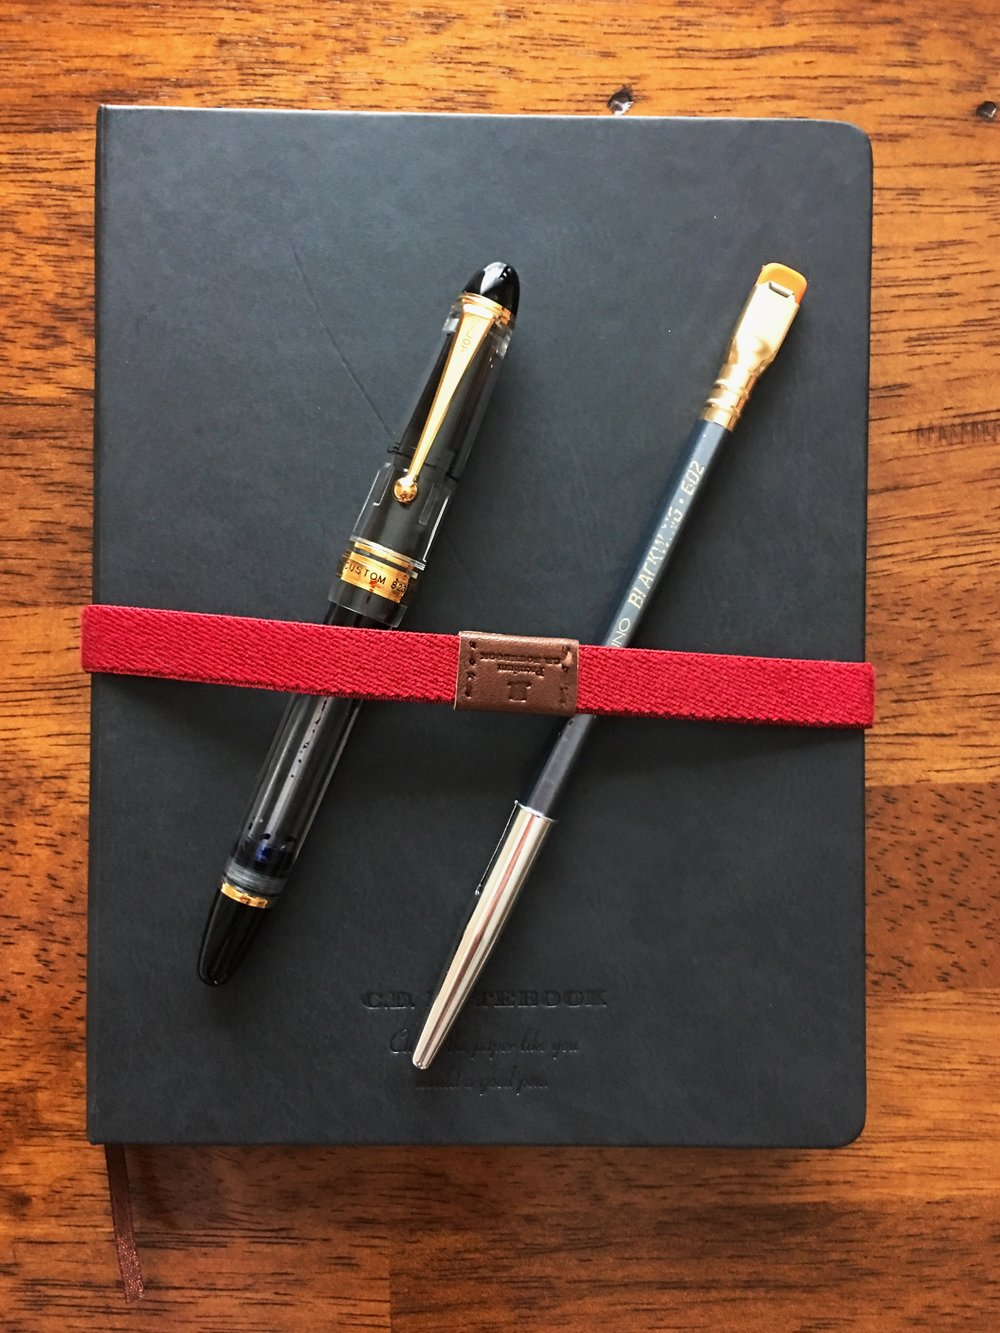 One of each: Pilot Custom 823, Blackwing 602, Apica CD